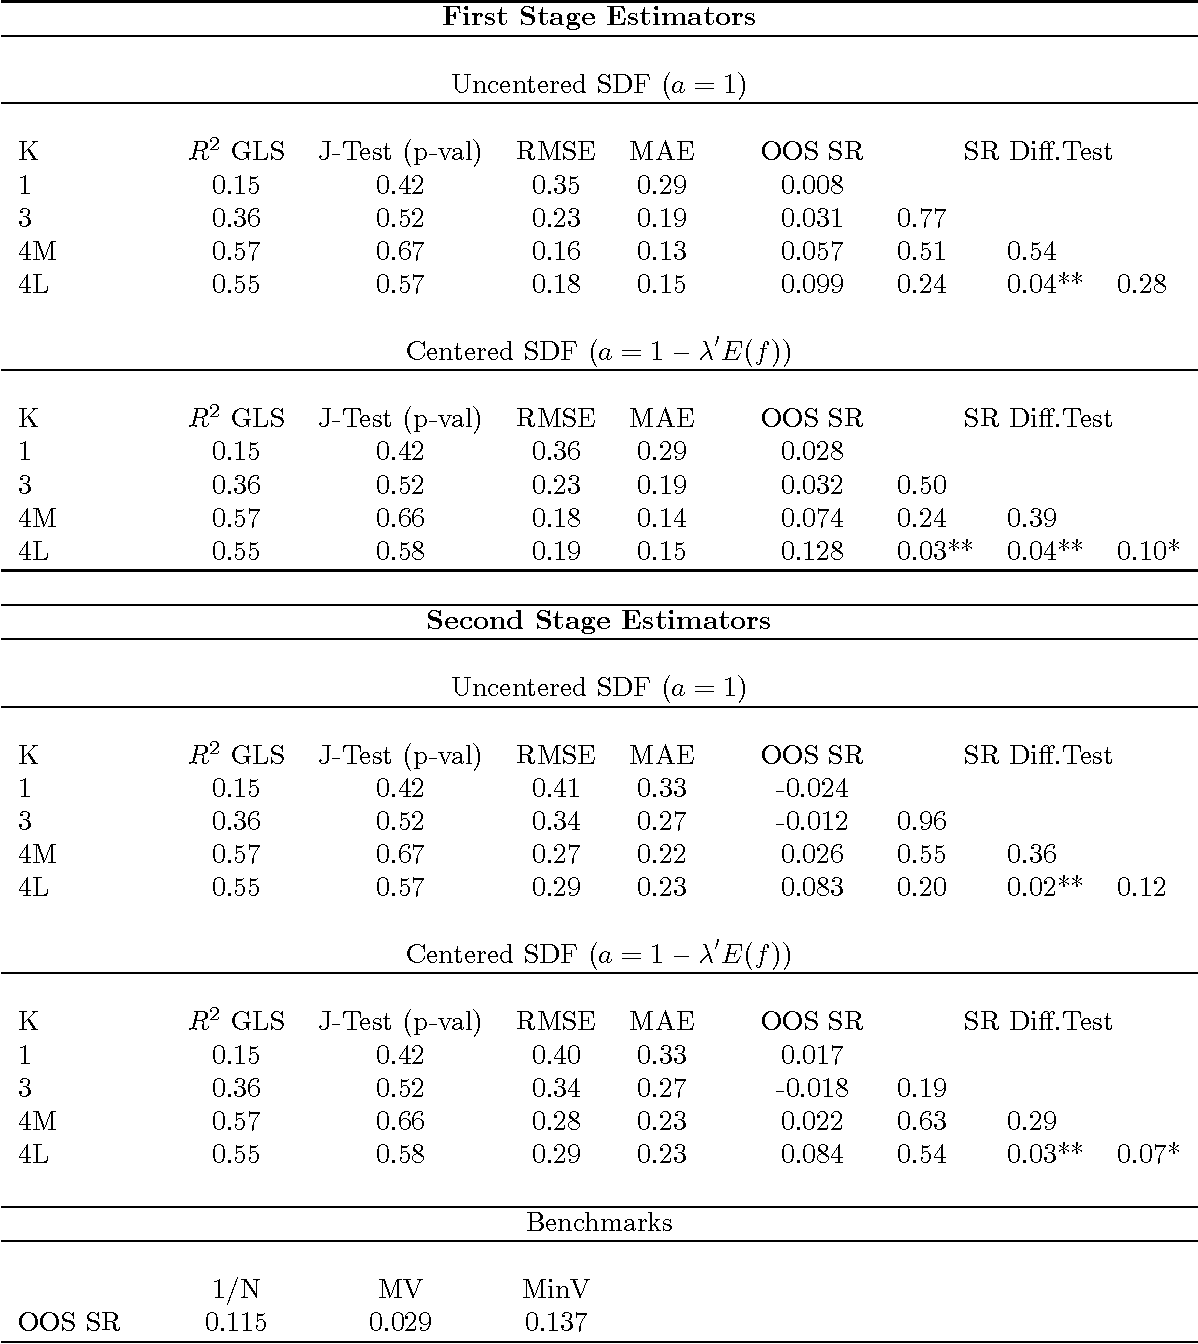 Table 6: Linear Asset Pricing Model Estimation and MV Portfolio Performance